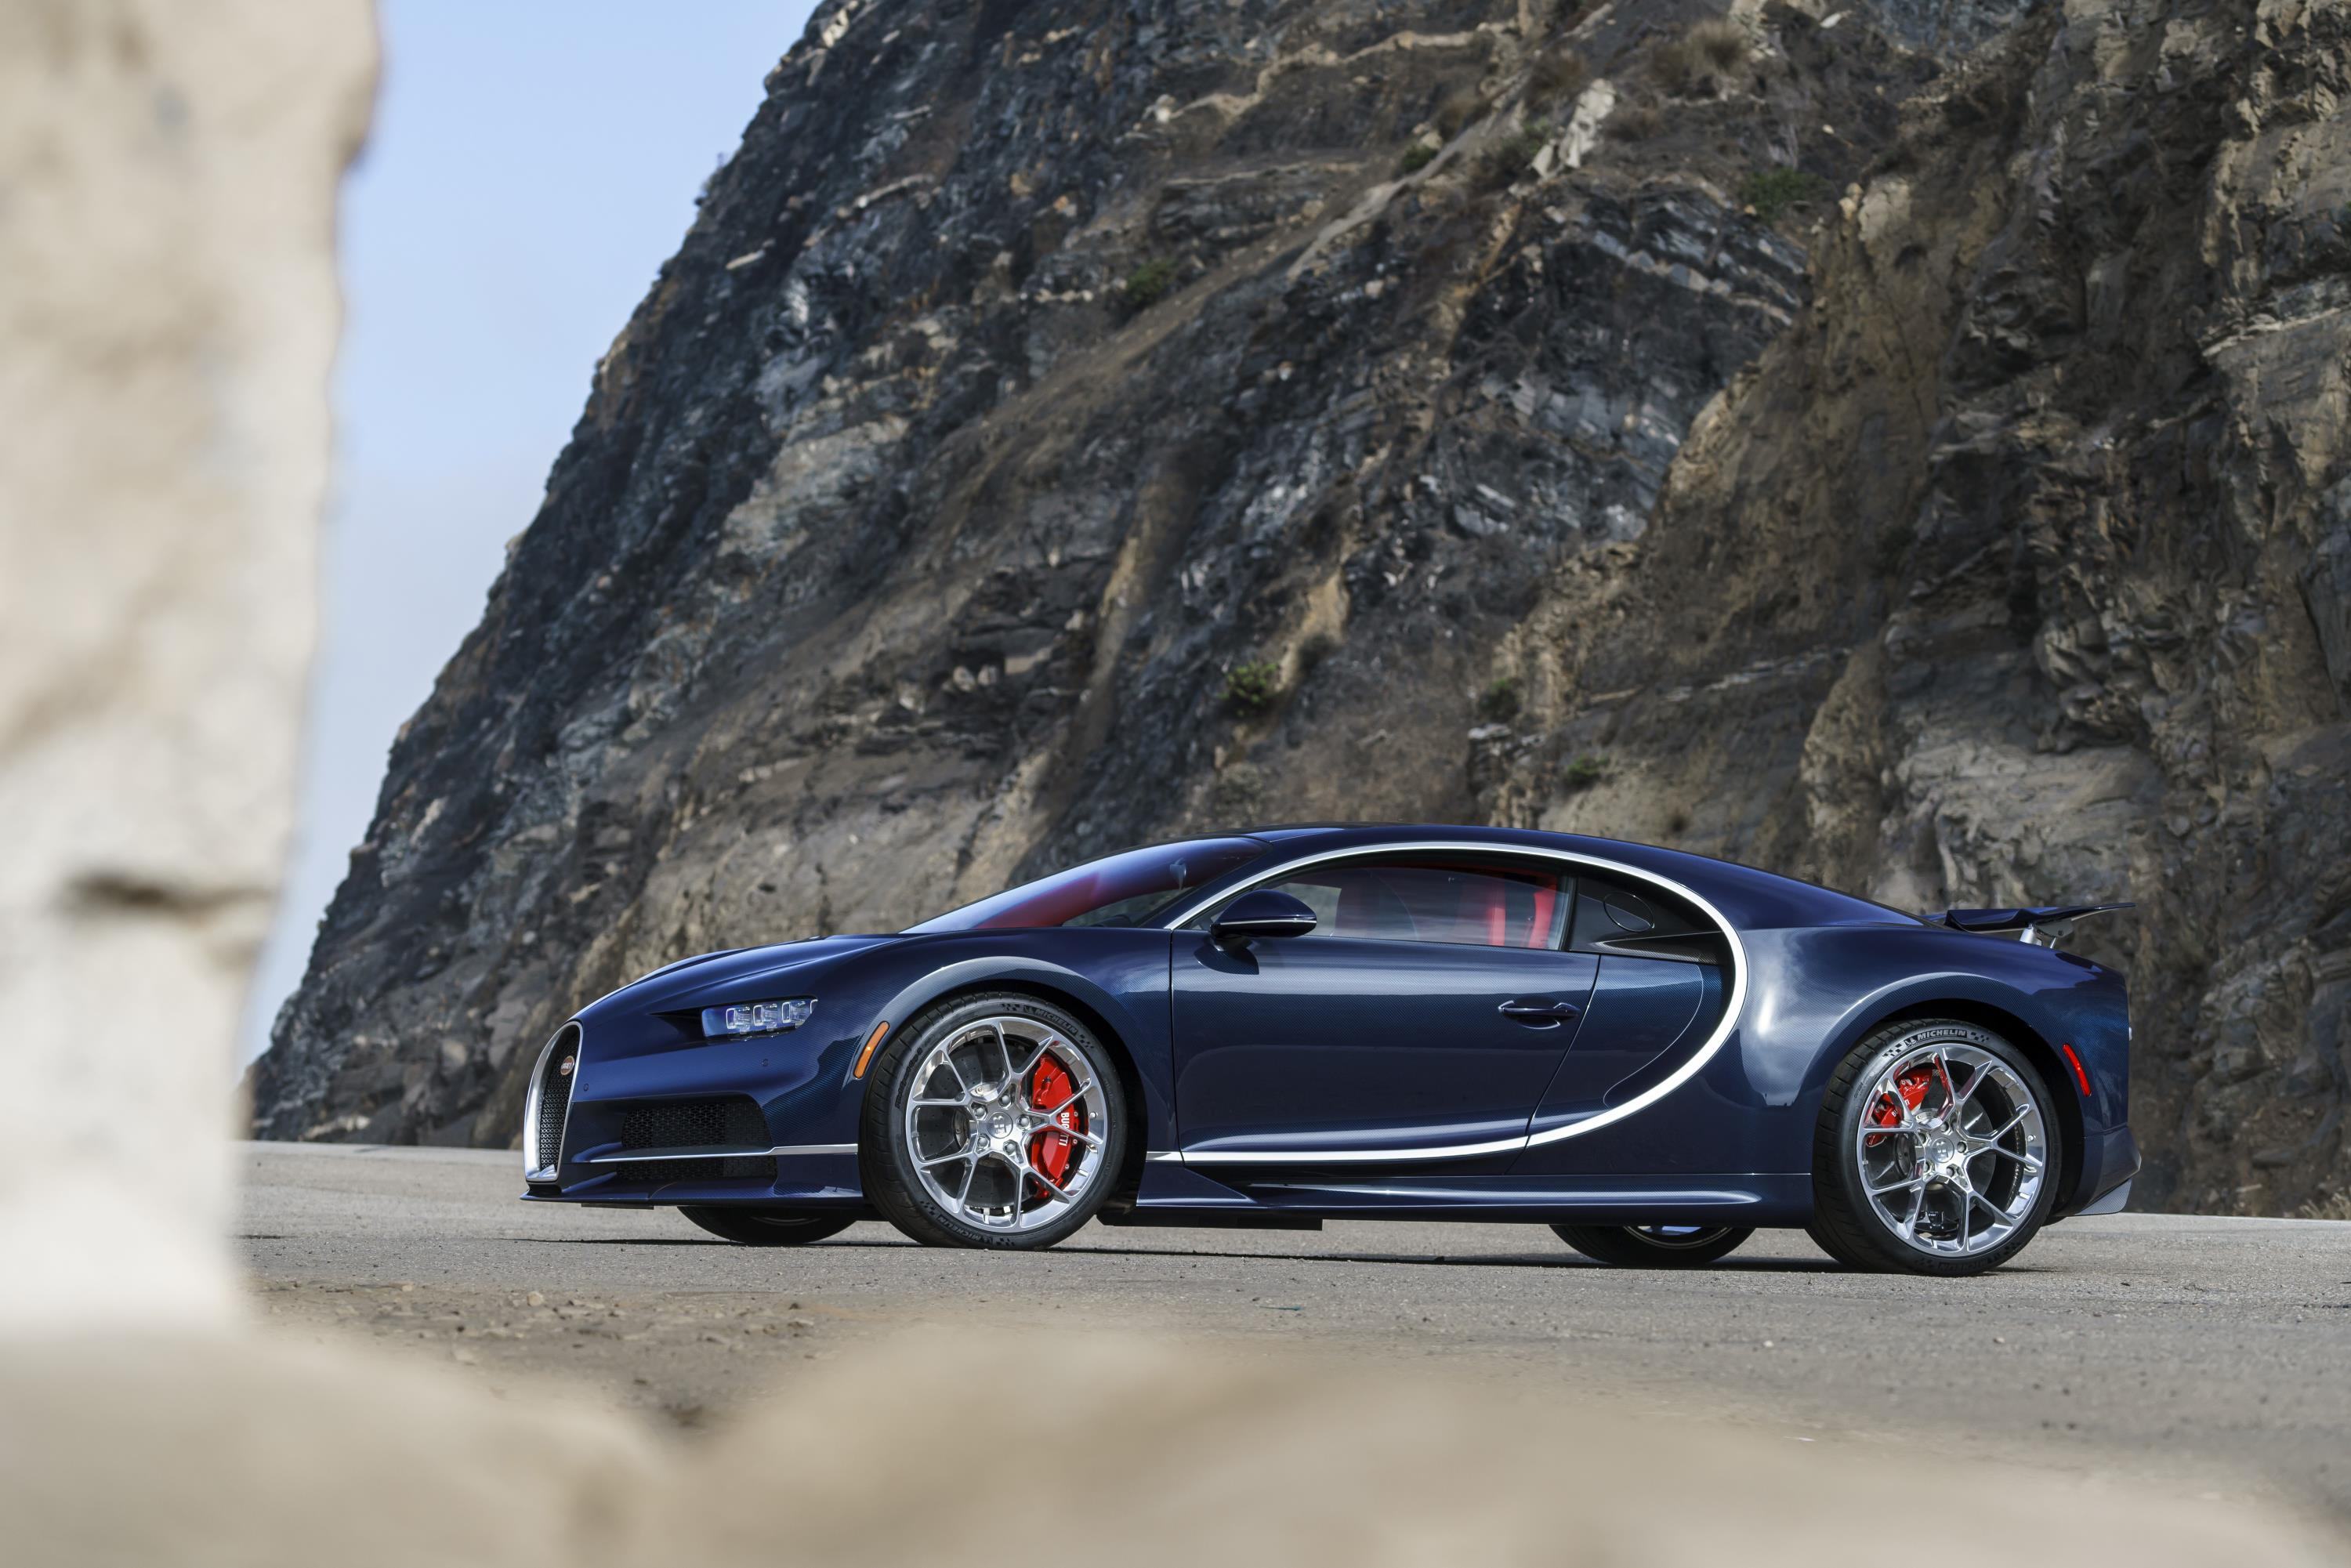 Bugatti looks to electrify their next Chiron